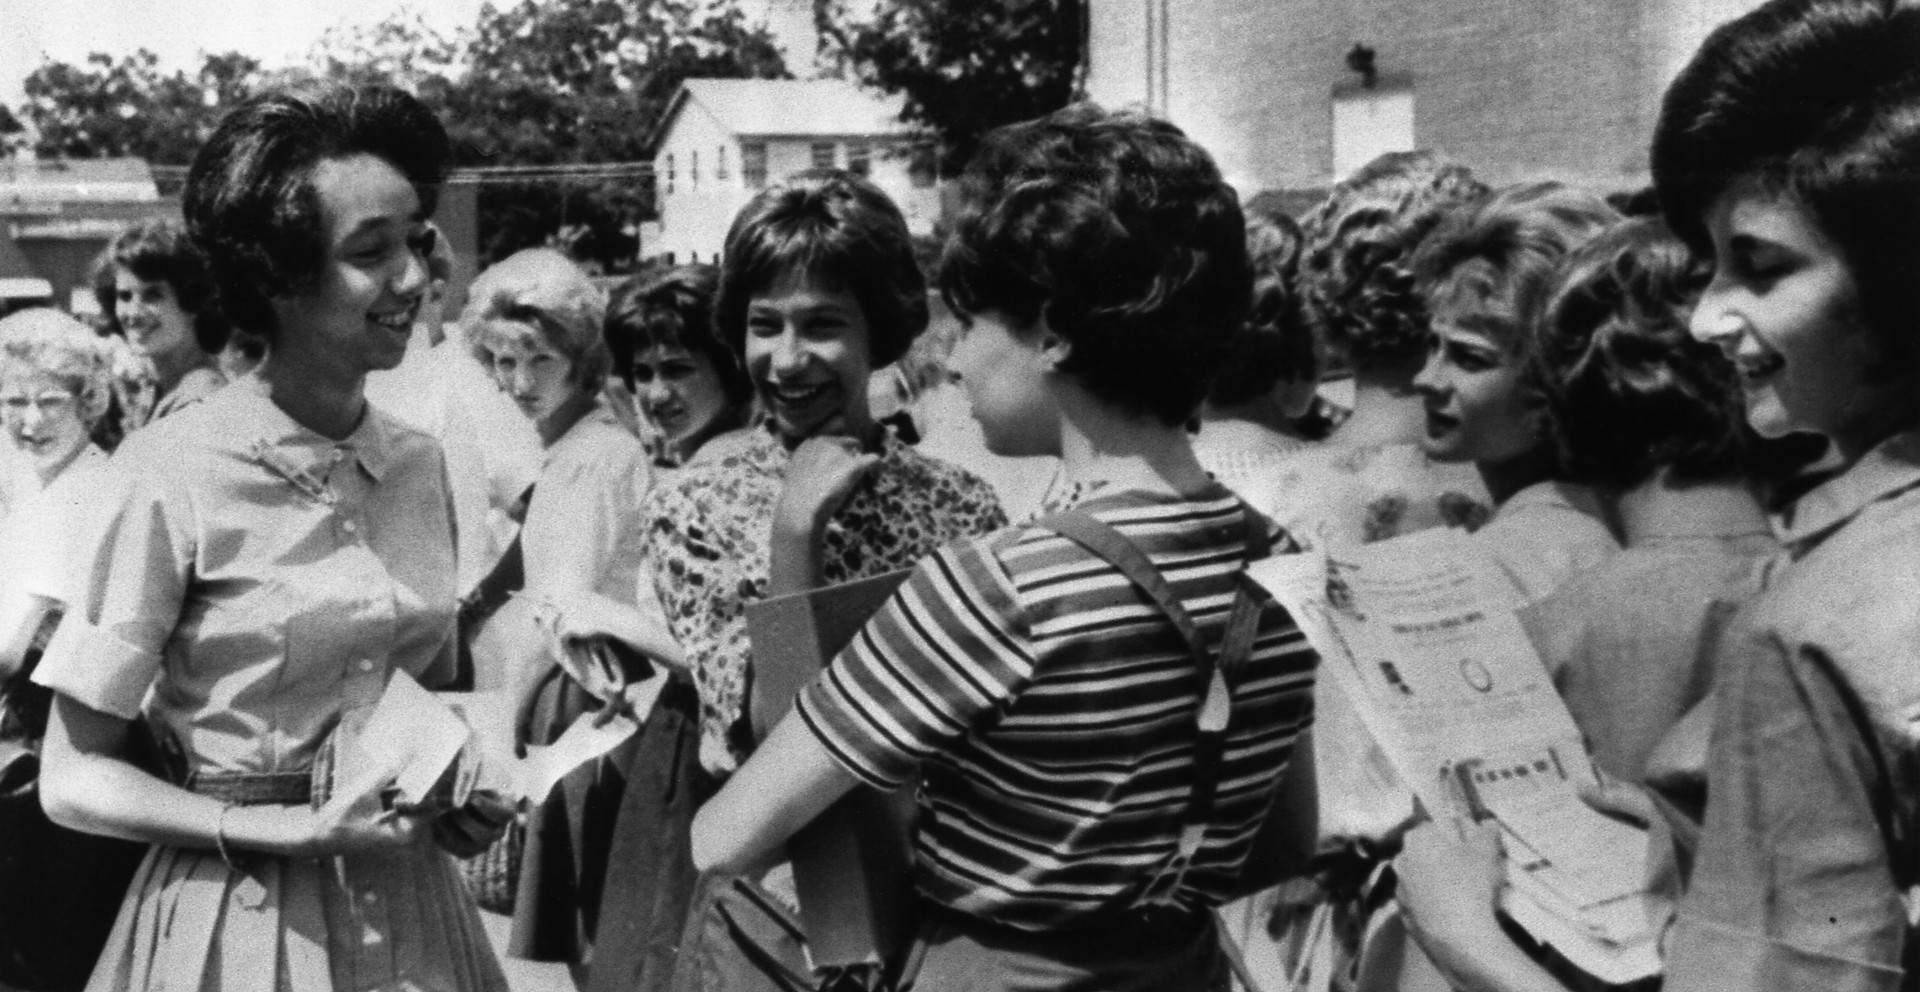 During a bomb scare at the school on September 3, 1963, 15-year-old Millicent Brown, left, chatted with fellow students outside Rivers High School.